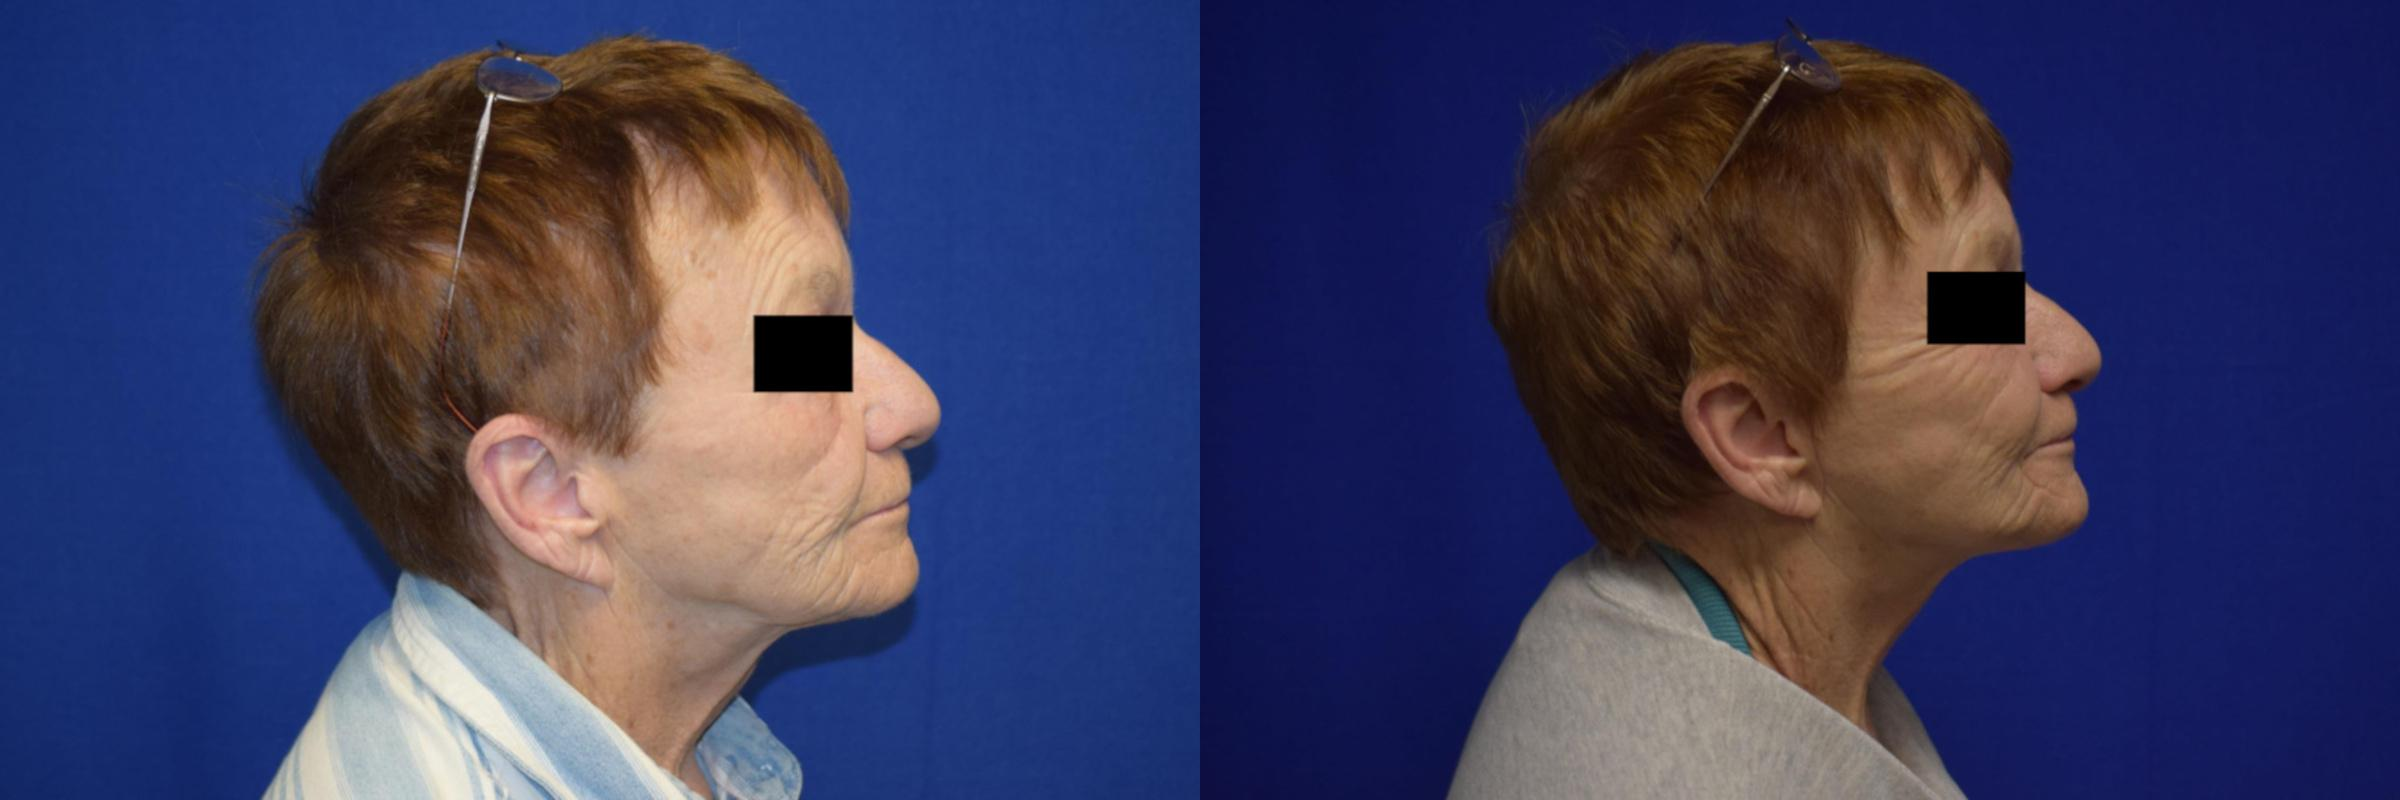 Neck Lift Before & After Photos | Ahmed Sufyan, MD